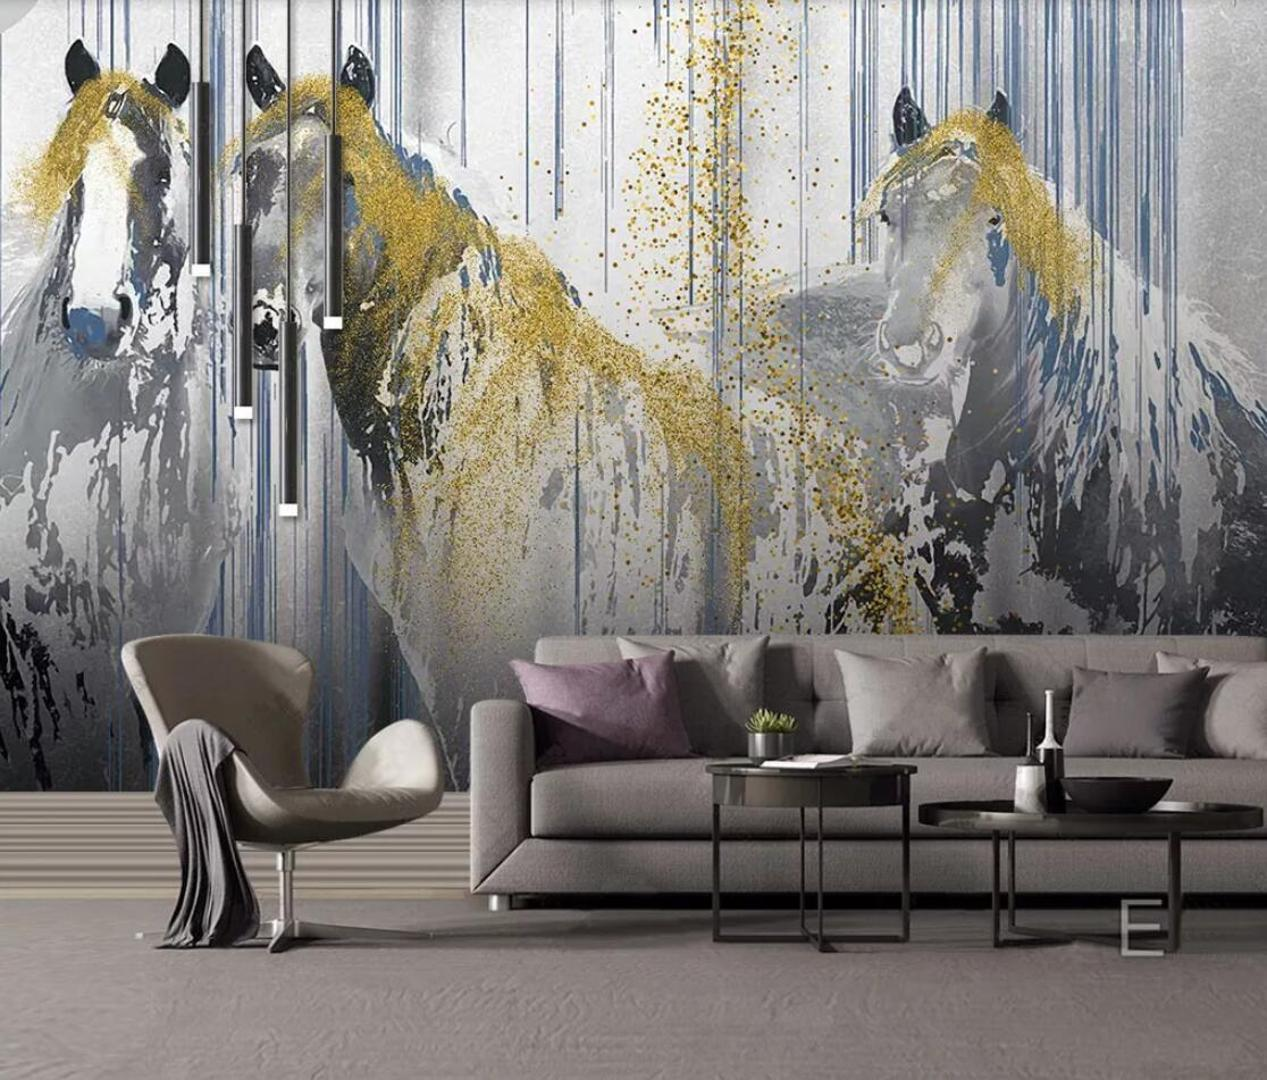 Abstract Gold Horse Wallpaper 3d Mural Picture For Living Room Canvas Print Art Wall Paper Hand Painting Contact Paper Wallpapers Download 3d Desktop Wallpaper From Douglass 18 61 Dhgate Com